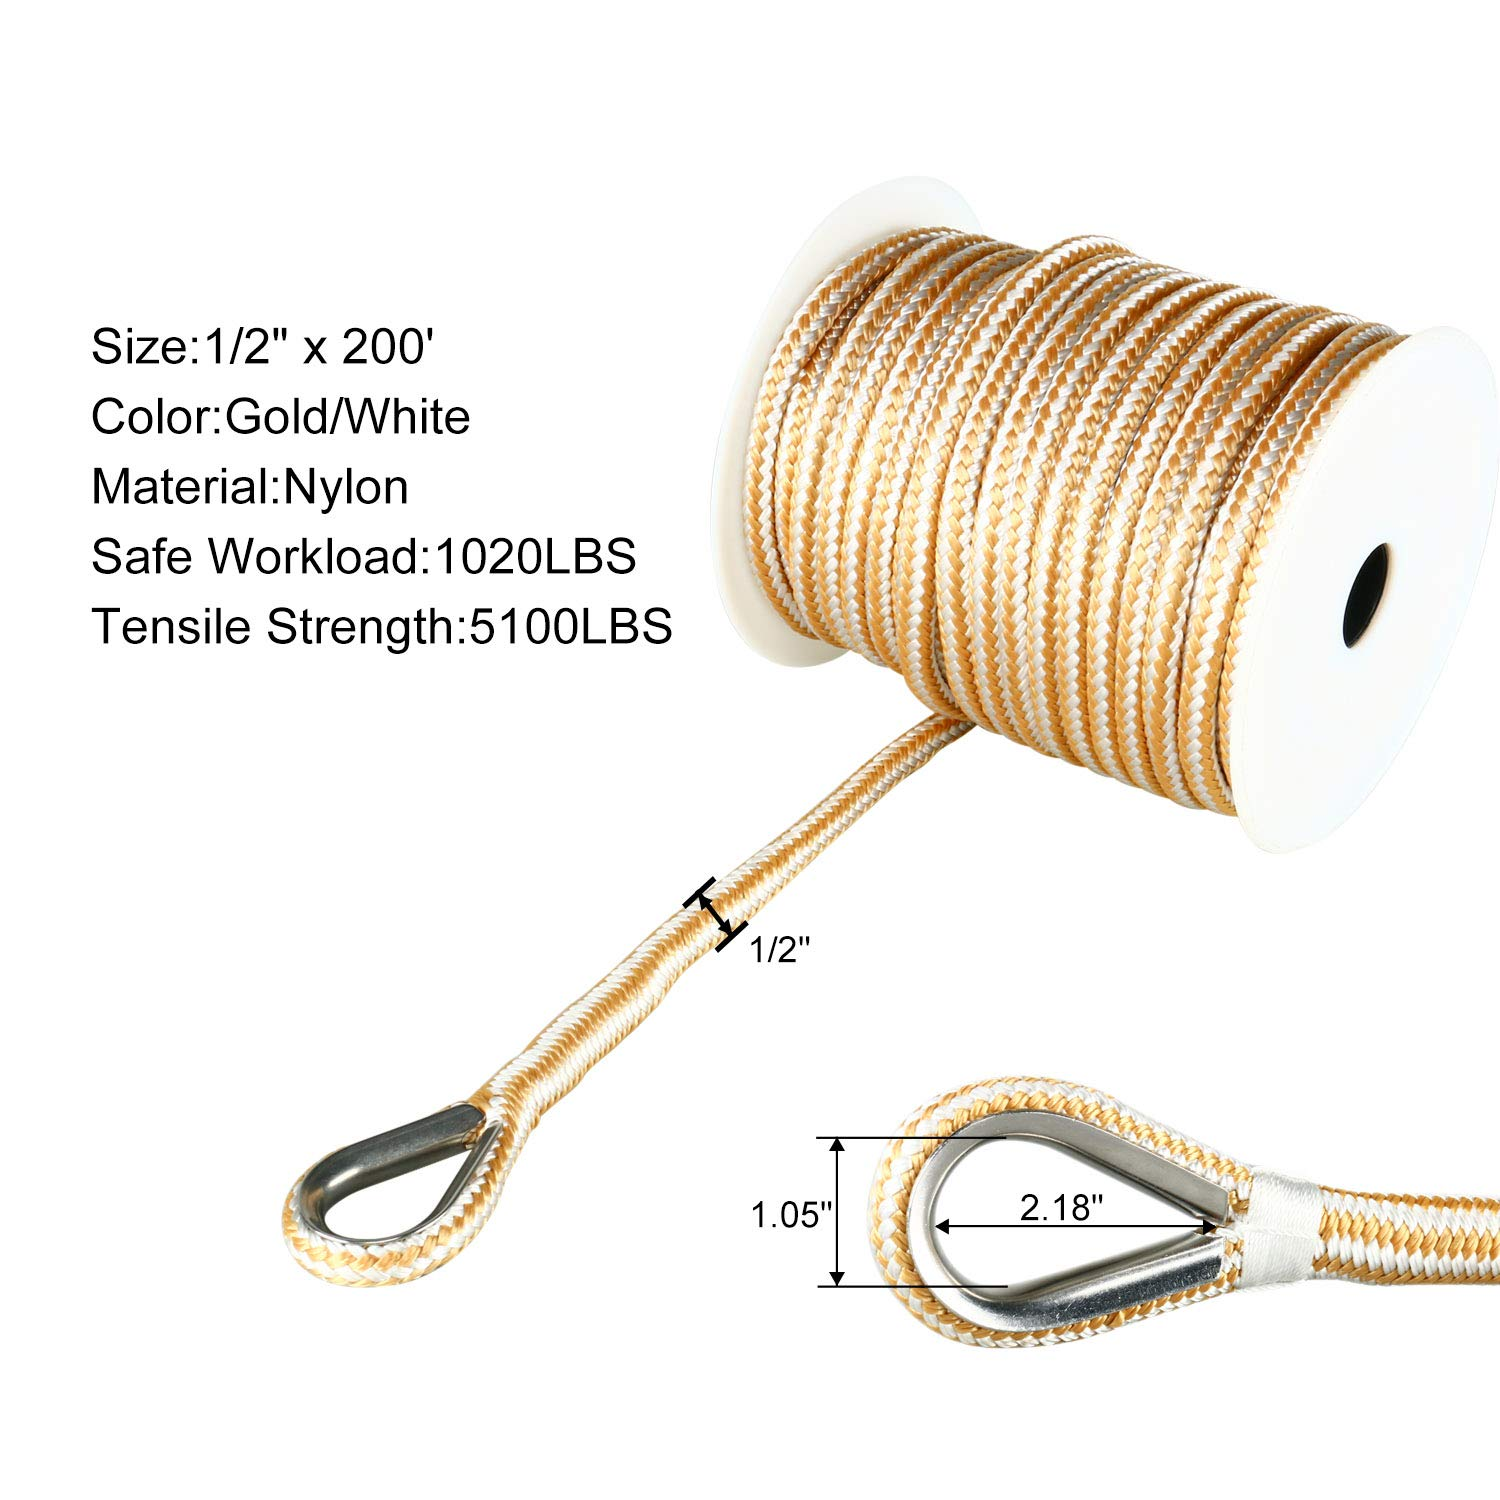 Amarine Made Heavy Duty Double Braid Nylon Anchor Line with Stainless Steel Thimble-White/Gold (1/2'' x 200')